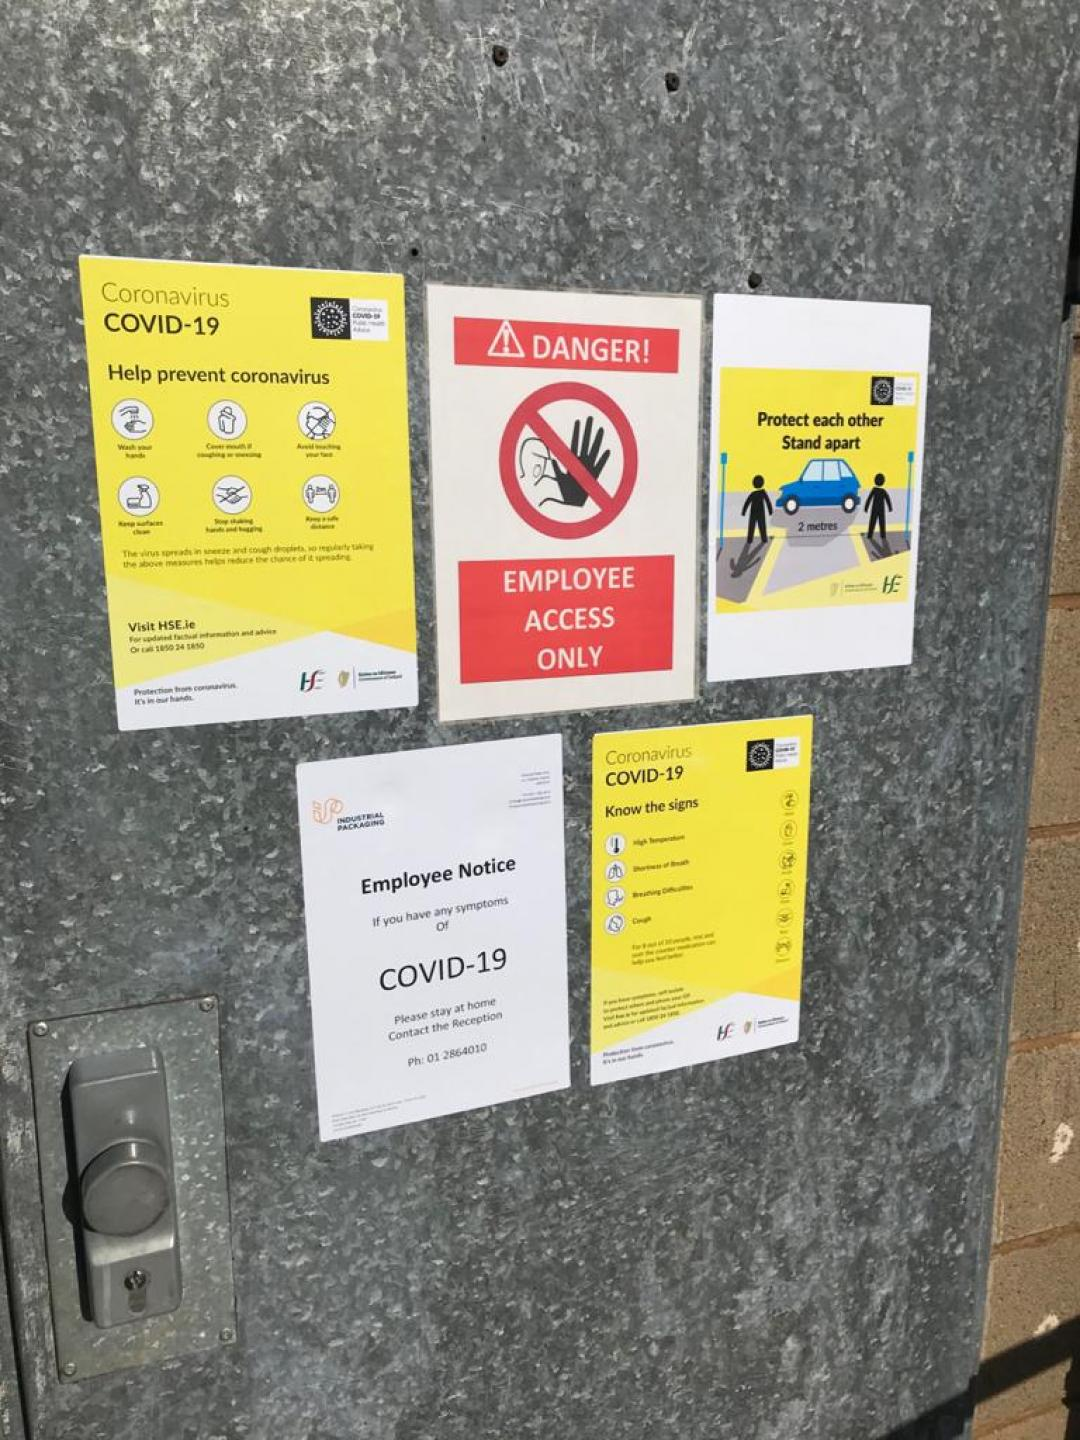 Signage on doors to Industrial Packaging factory about COVID19 safety measures